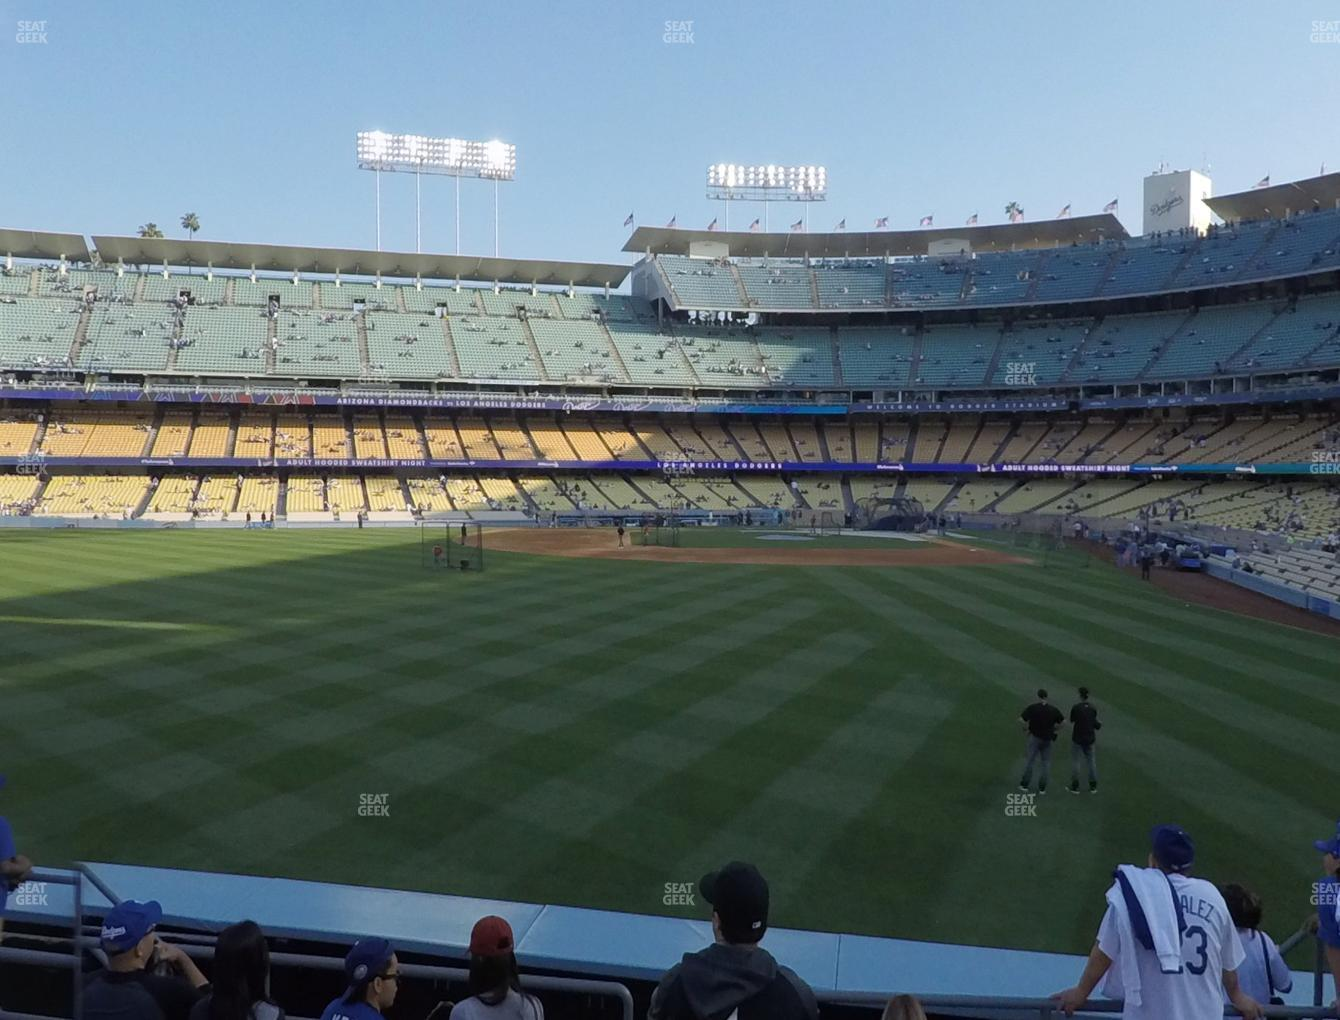 Los Angeles Dodgers at Dodger Stadium Left Field Pavilion 303 View